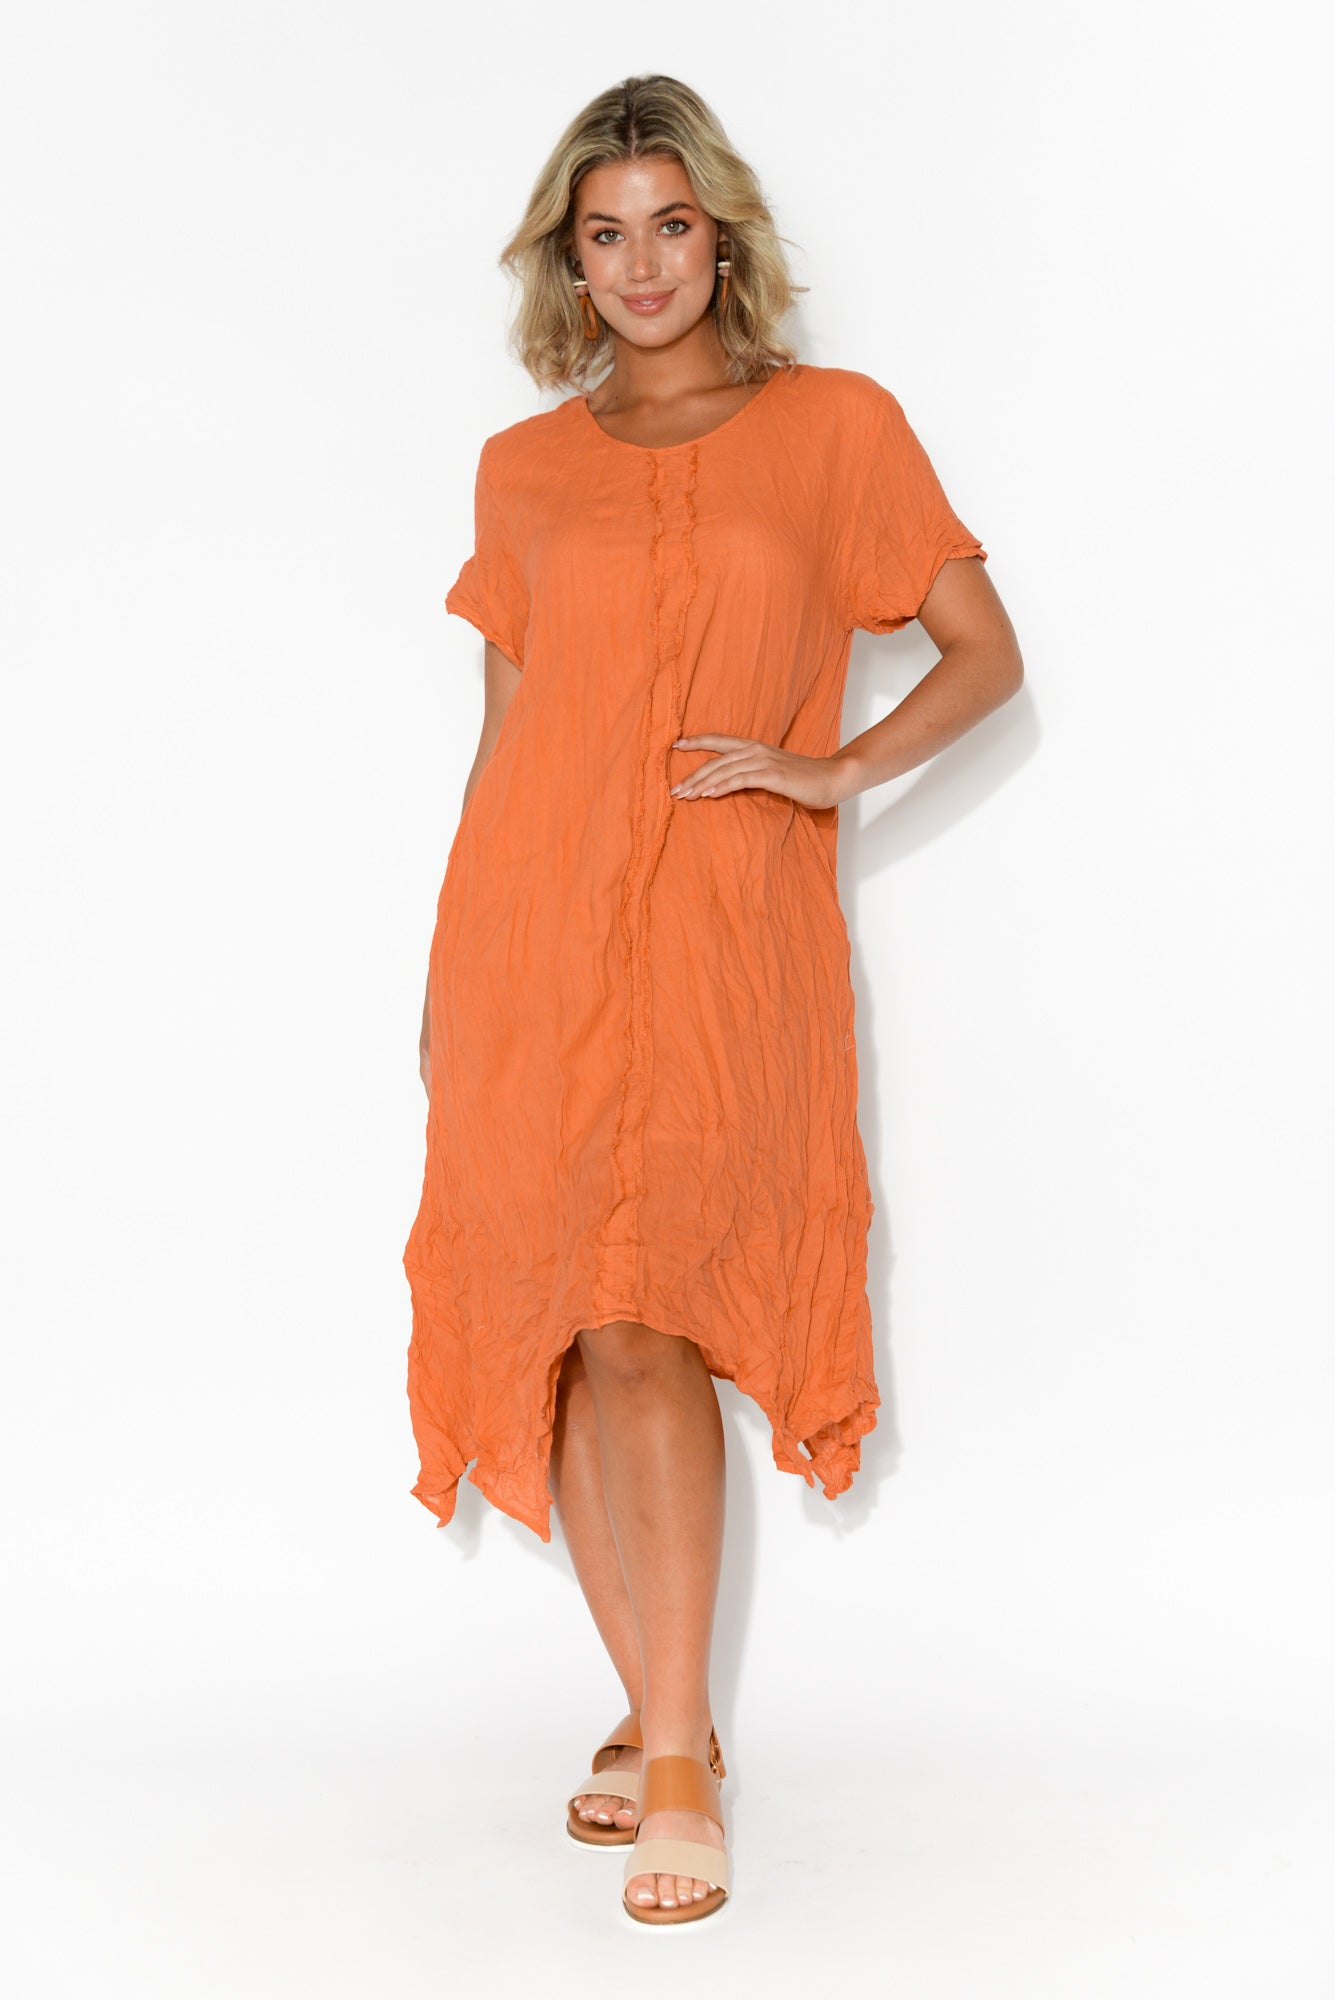 Claire Orange Crinkle Cotton Dress